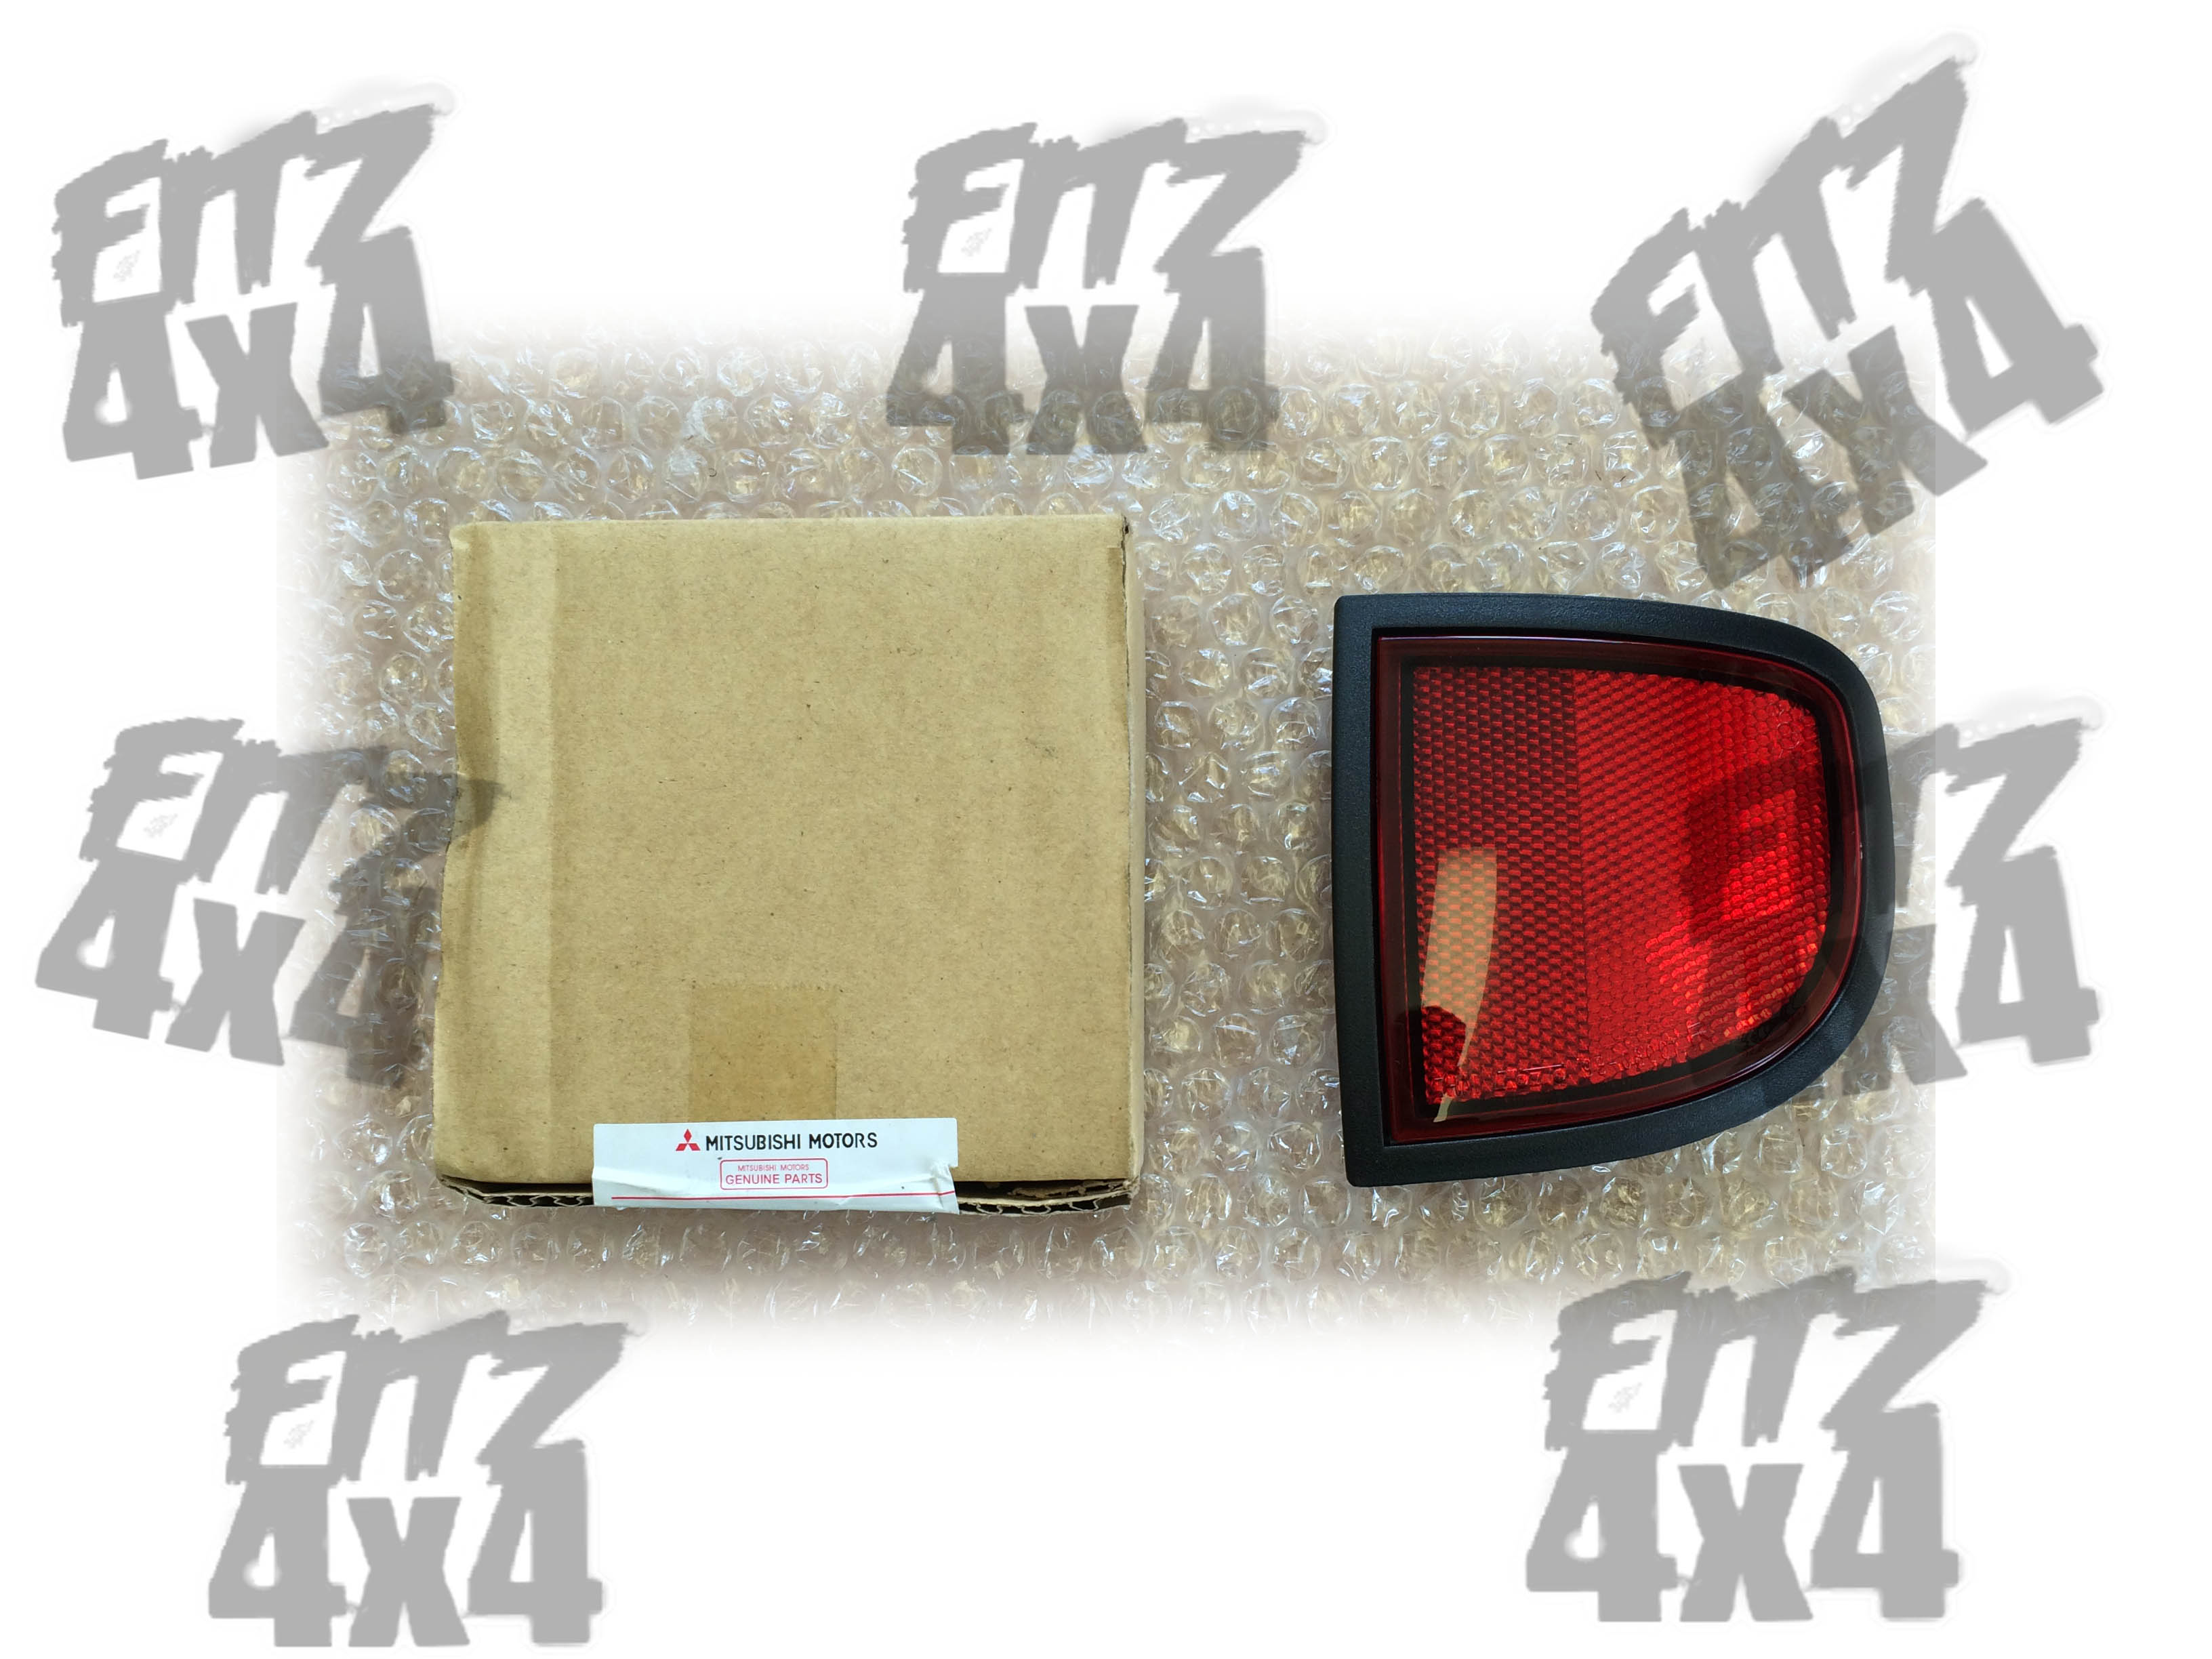 2006-2014 L200 rear right reflector